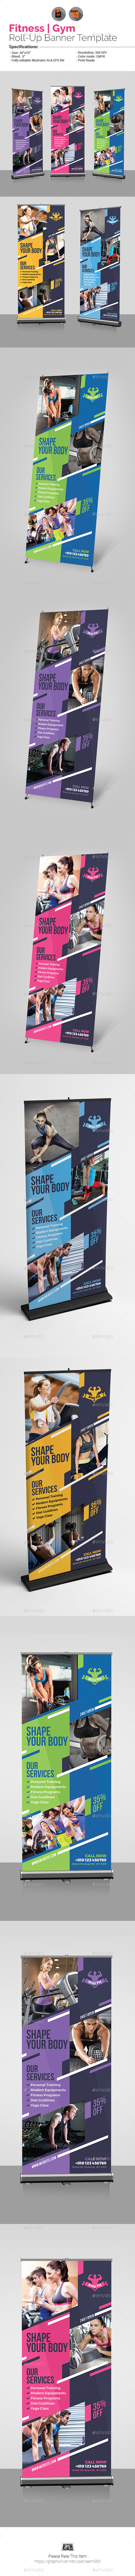 GraphicRiver Fitness Roll-Up Banner Template 20969707